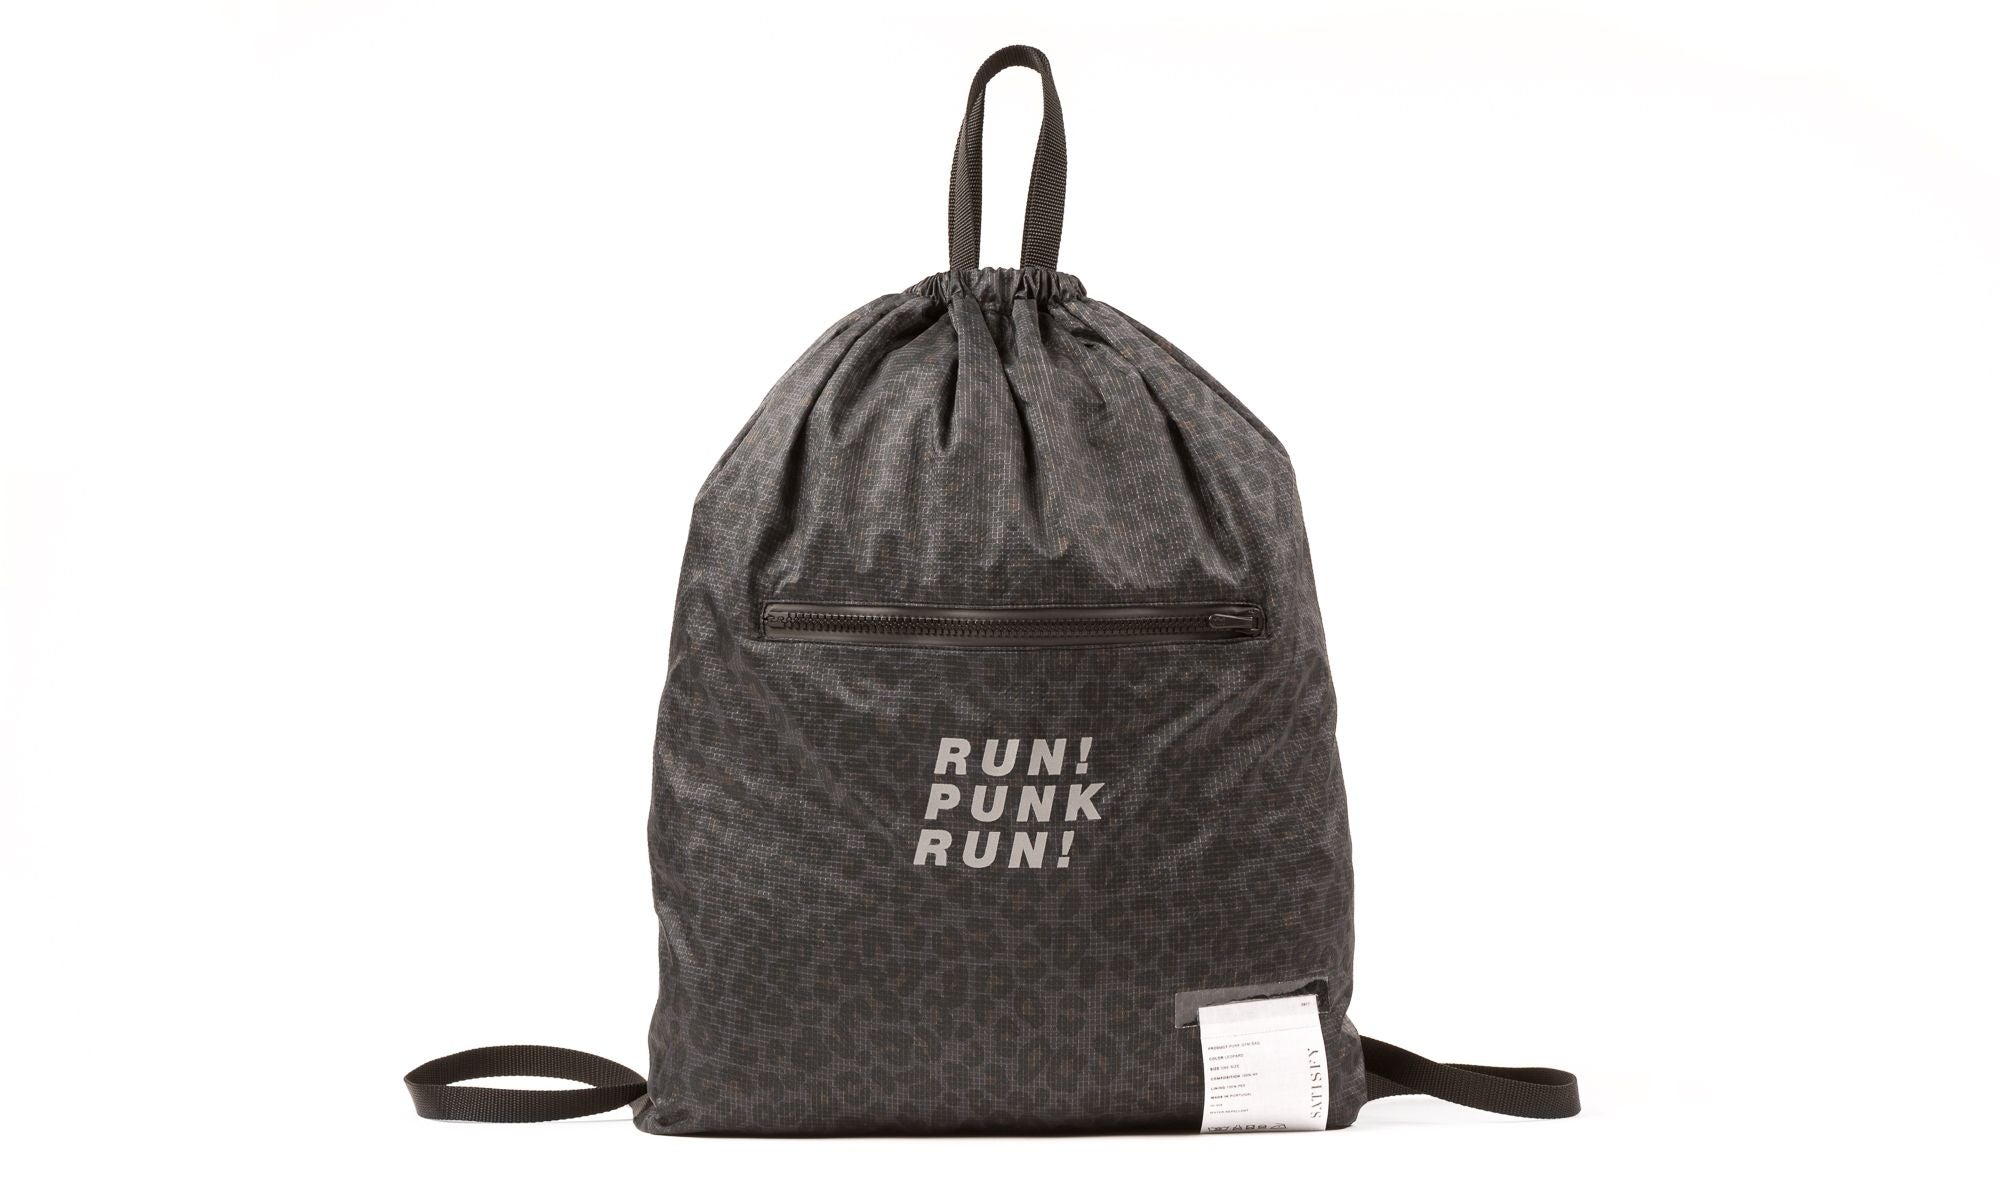 Punk Gym Bag